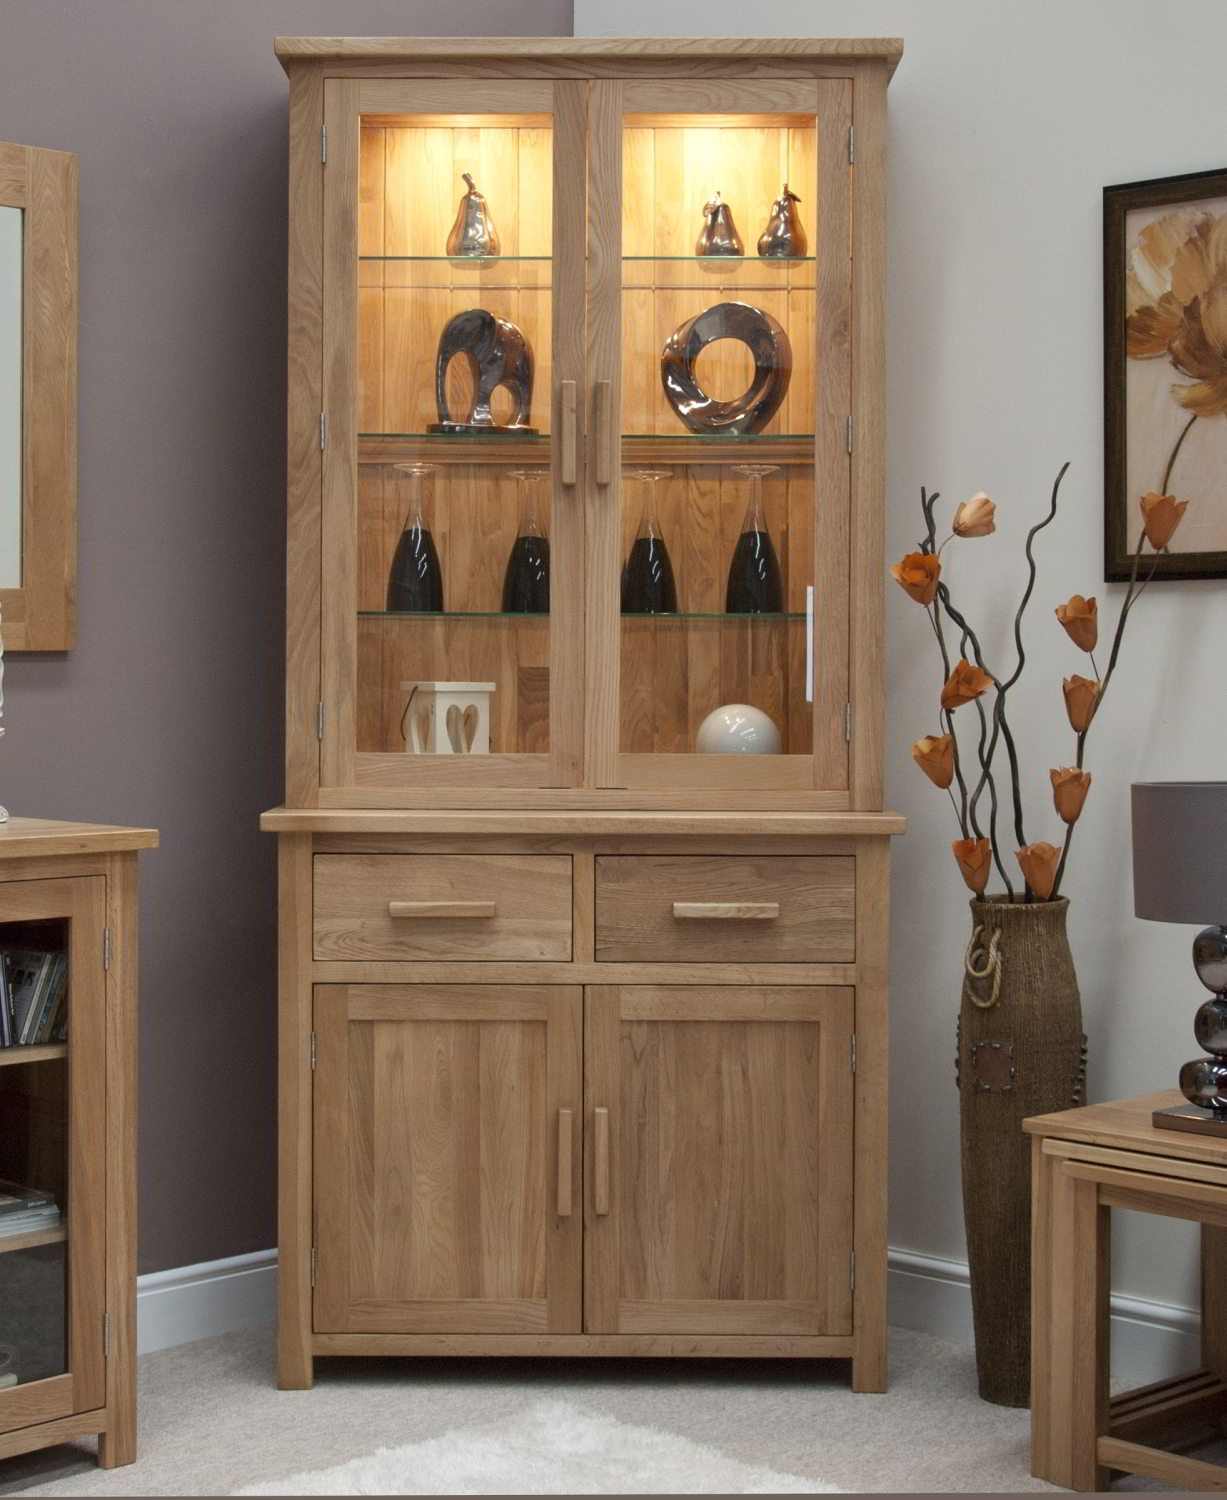 Details About Eton Solid Oak Living Dining Room Furniture Small Dresser Display Cabinet